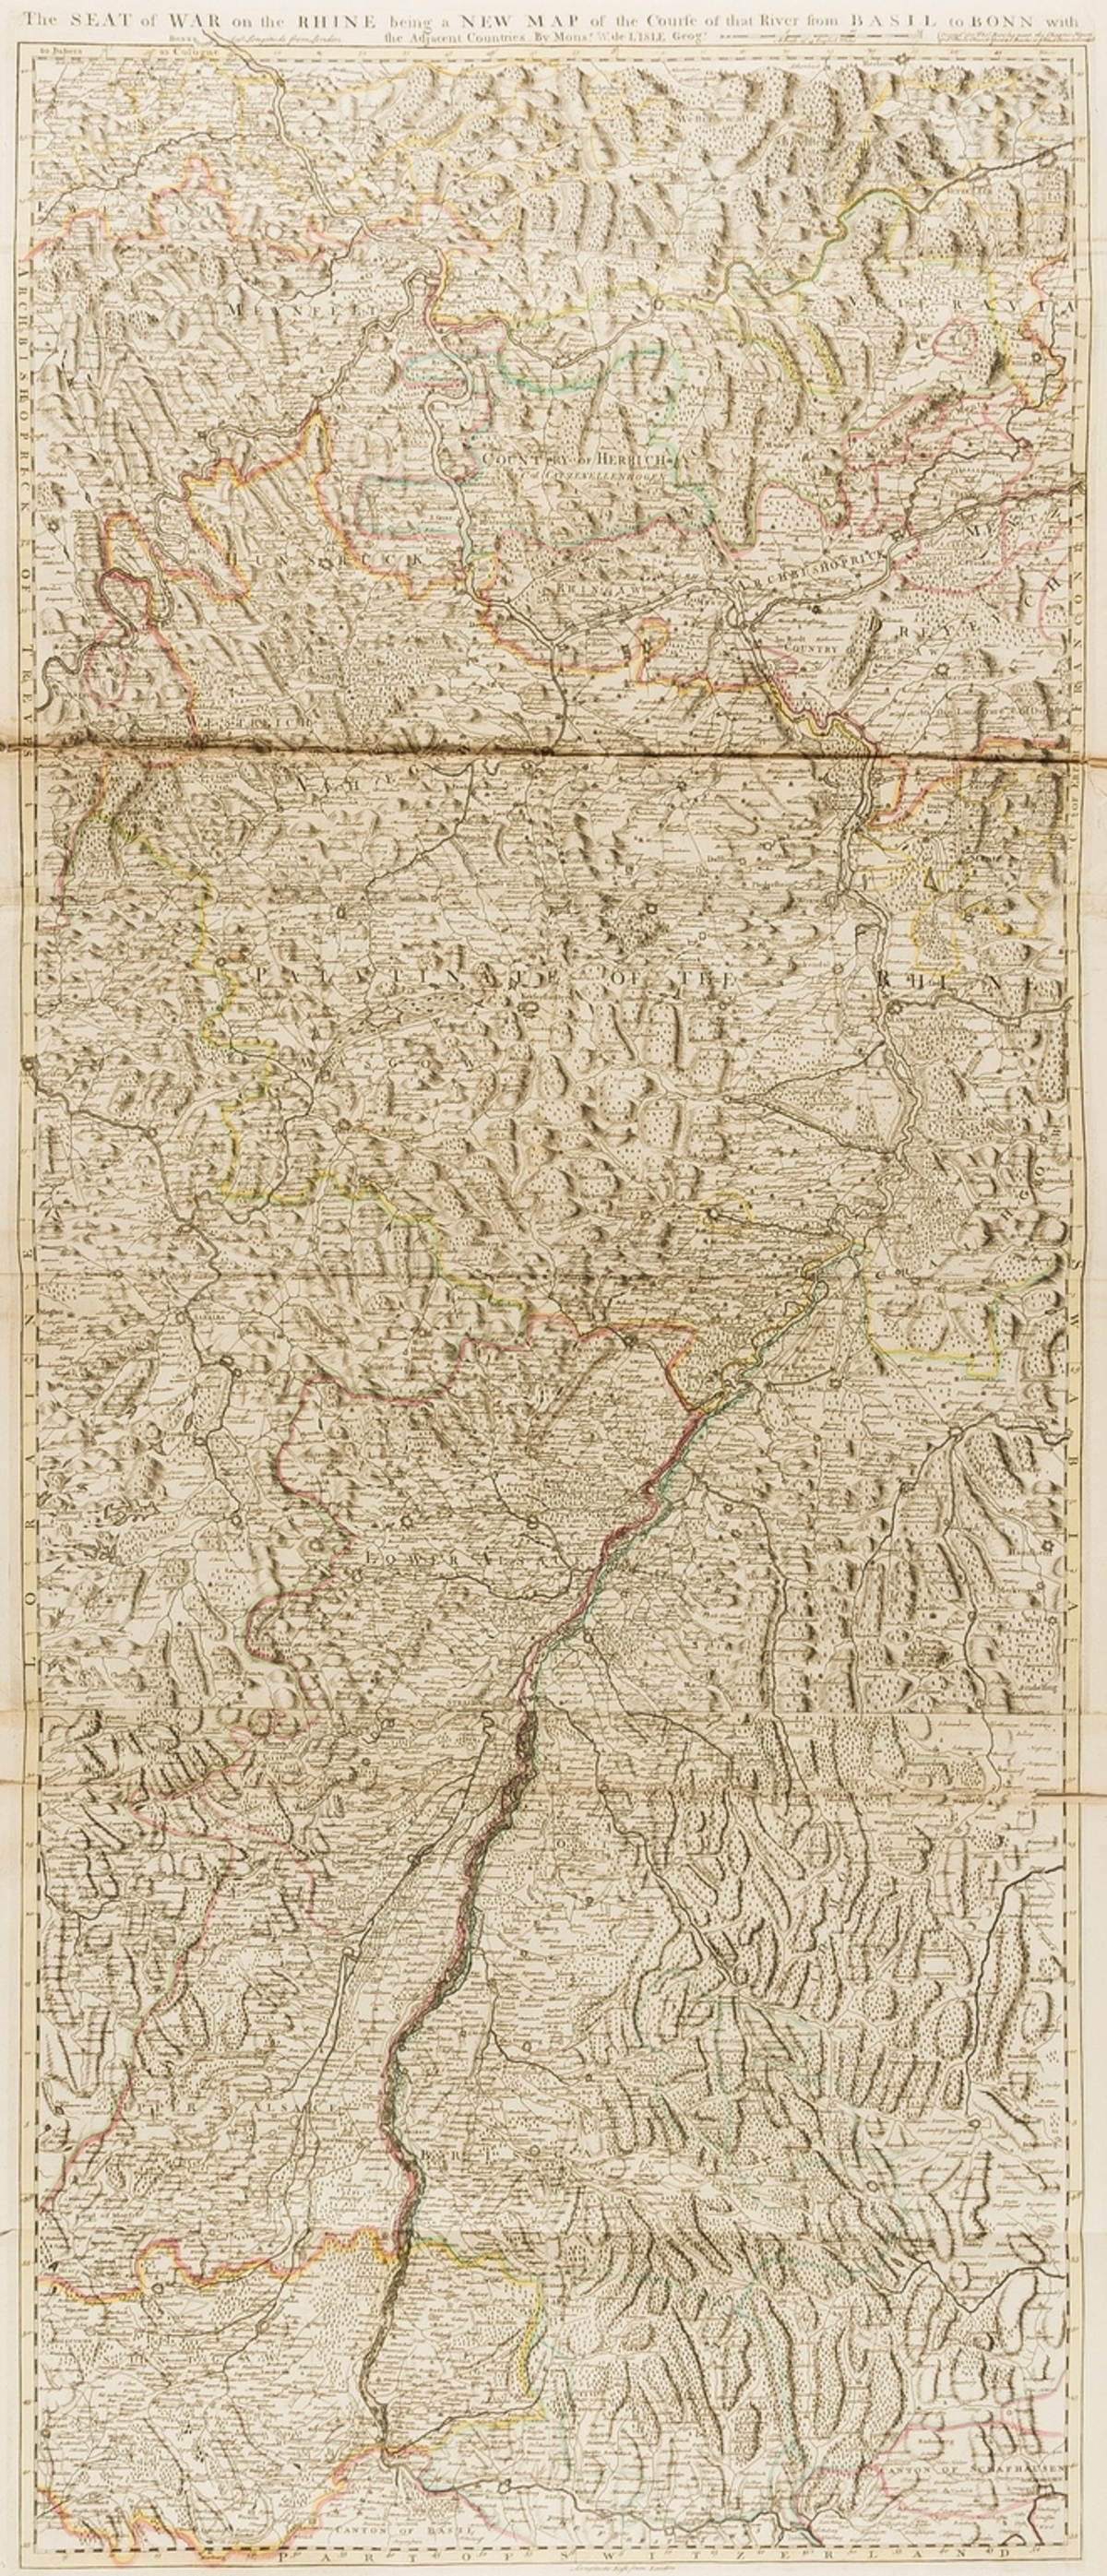 Europe.- The Rhine.- De L'Isle (Guillaume) The Seat of War on the Rhine being a New Map of the …